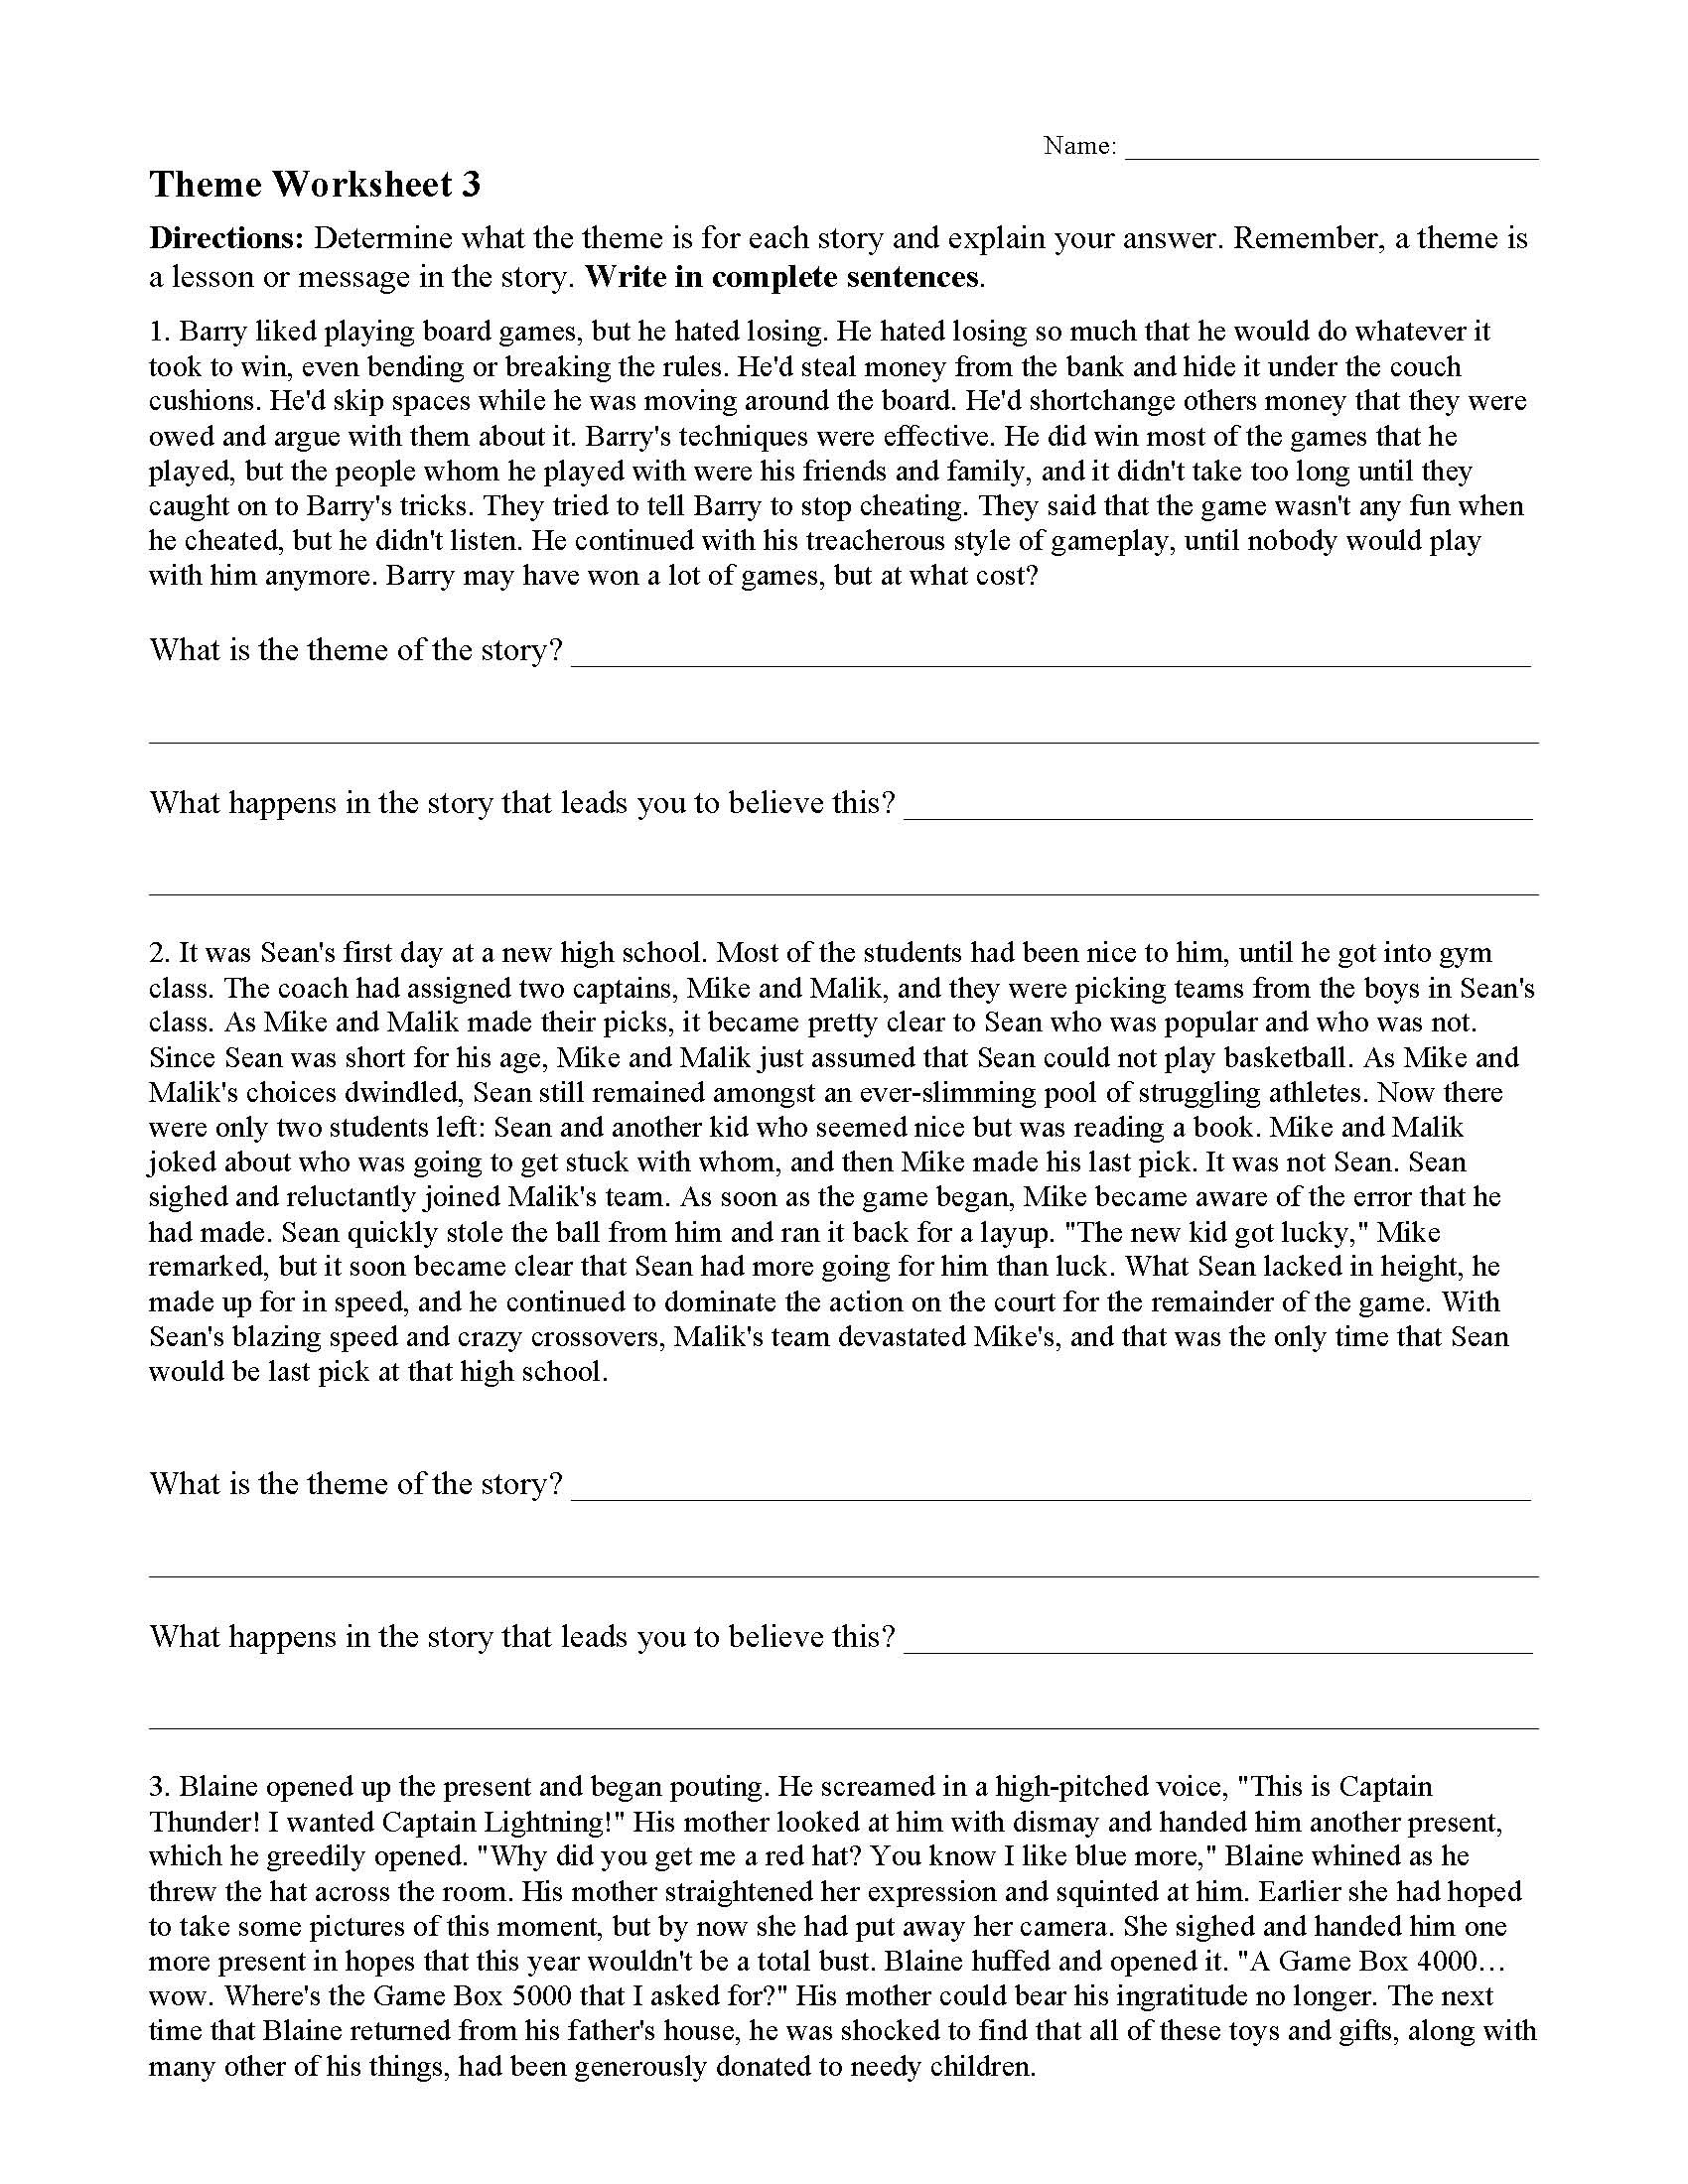 Theme Worksheets Middle School theme or Author S Message Worksheets